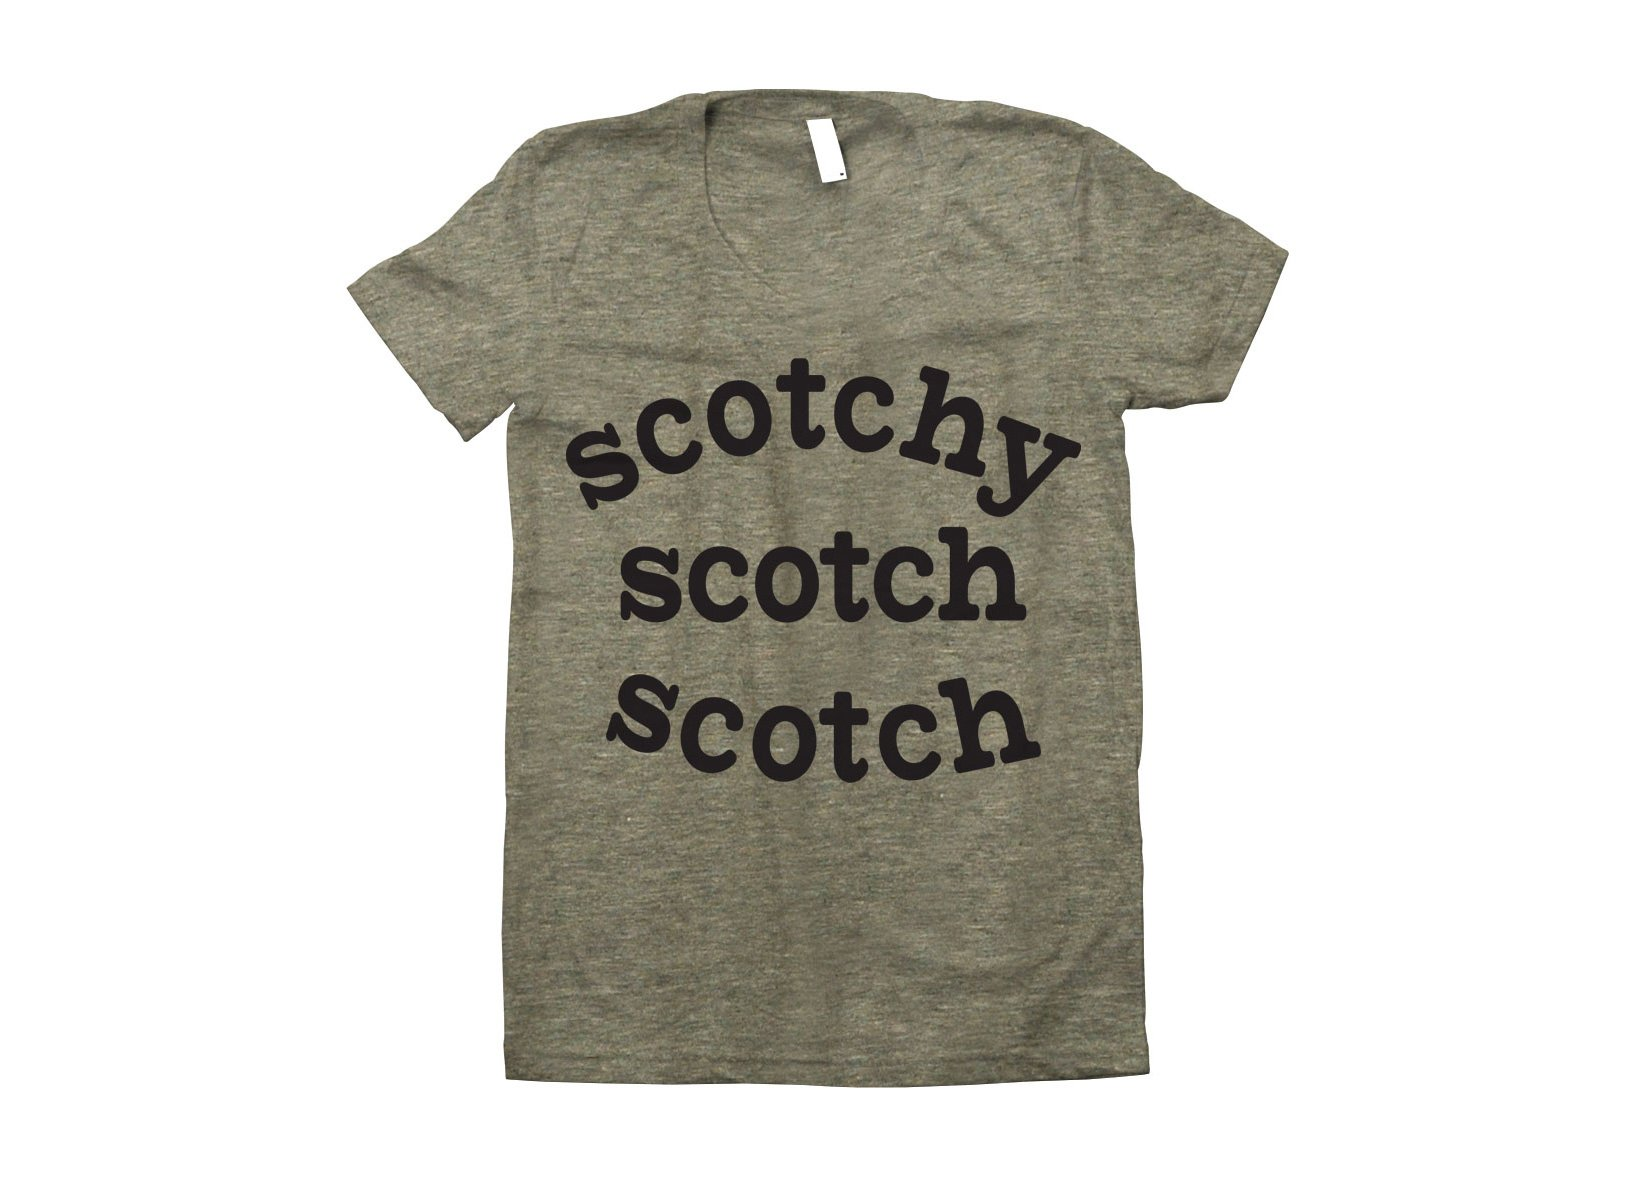 Scotchy Scotch Scotch on Juniors T-Shirt